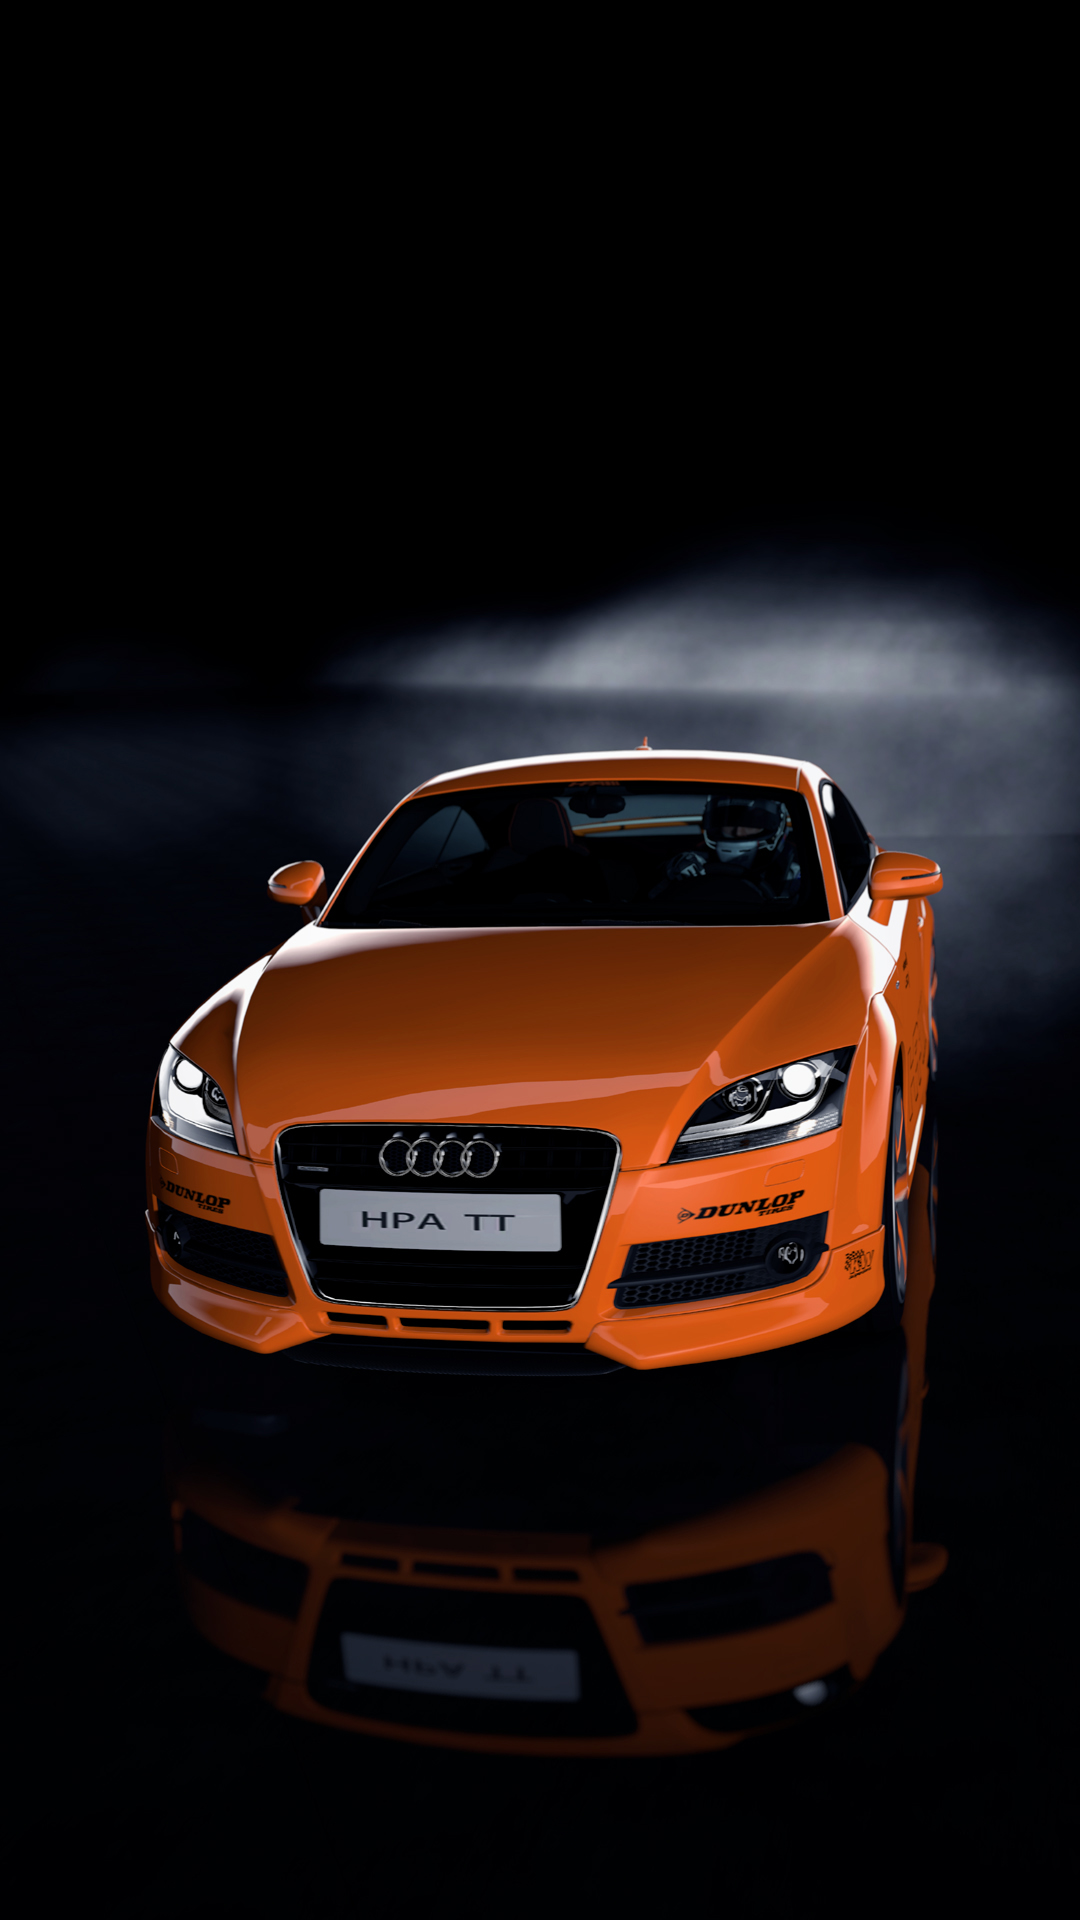 Htc One M8 Wallpaper Hd Audi Tt Best Htc One Wallpapers Free And Easy To Download